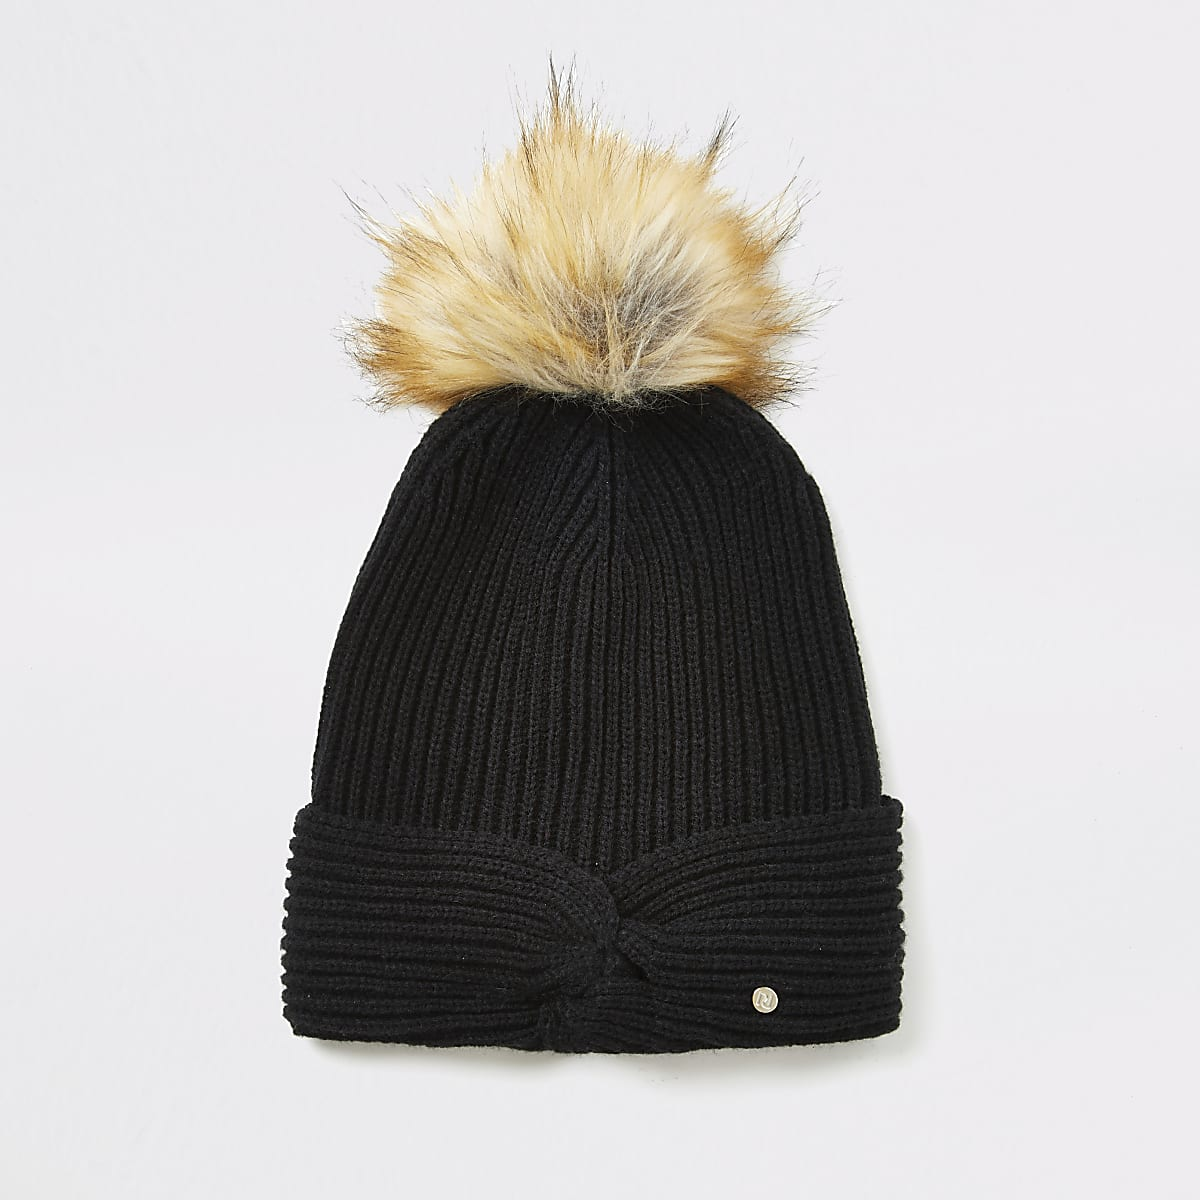 Black twisted front knitted beanie hat